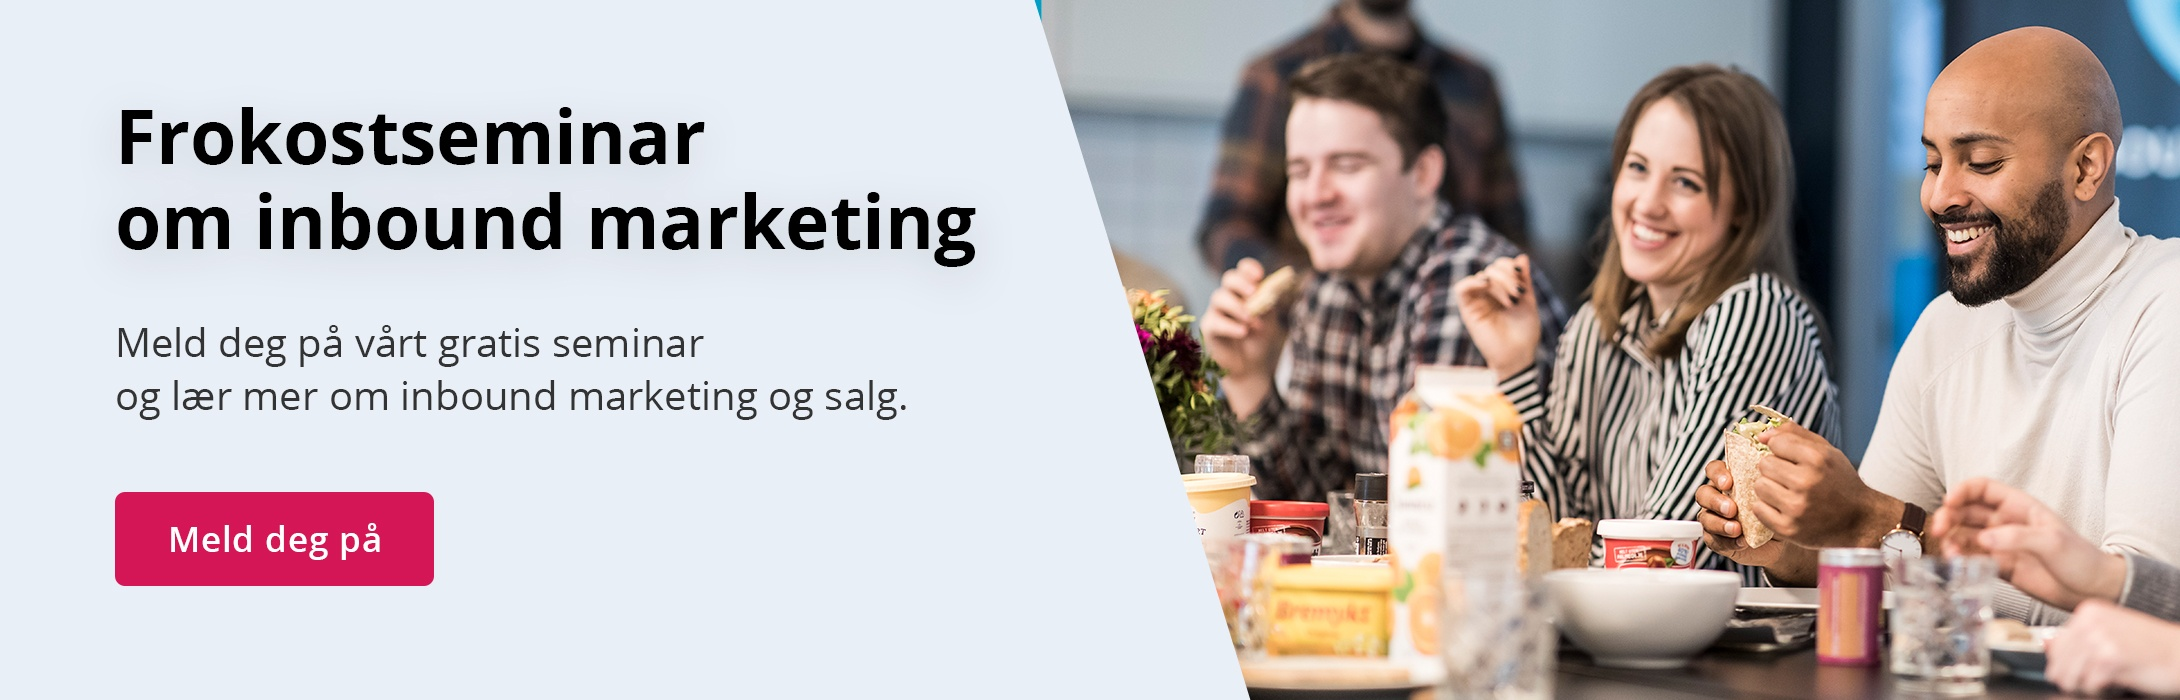 frokostseminar inbound marketing og salg